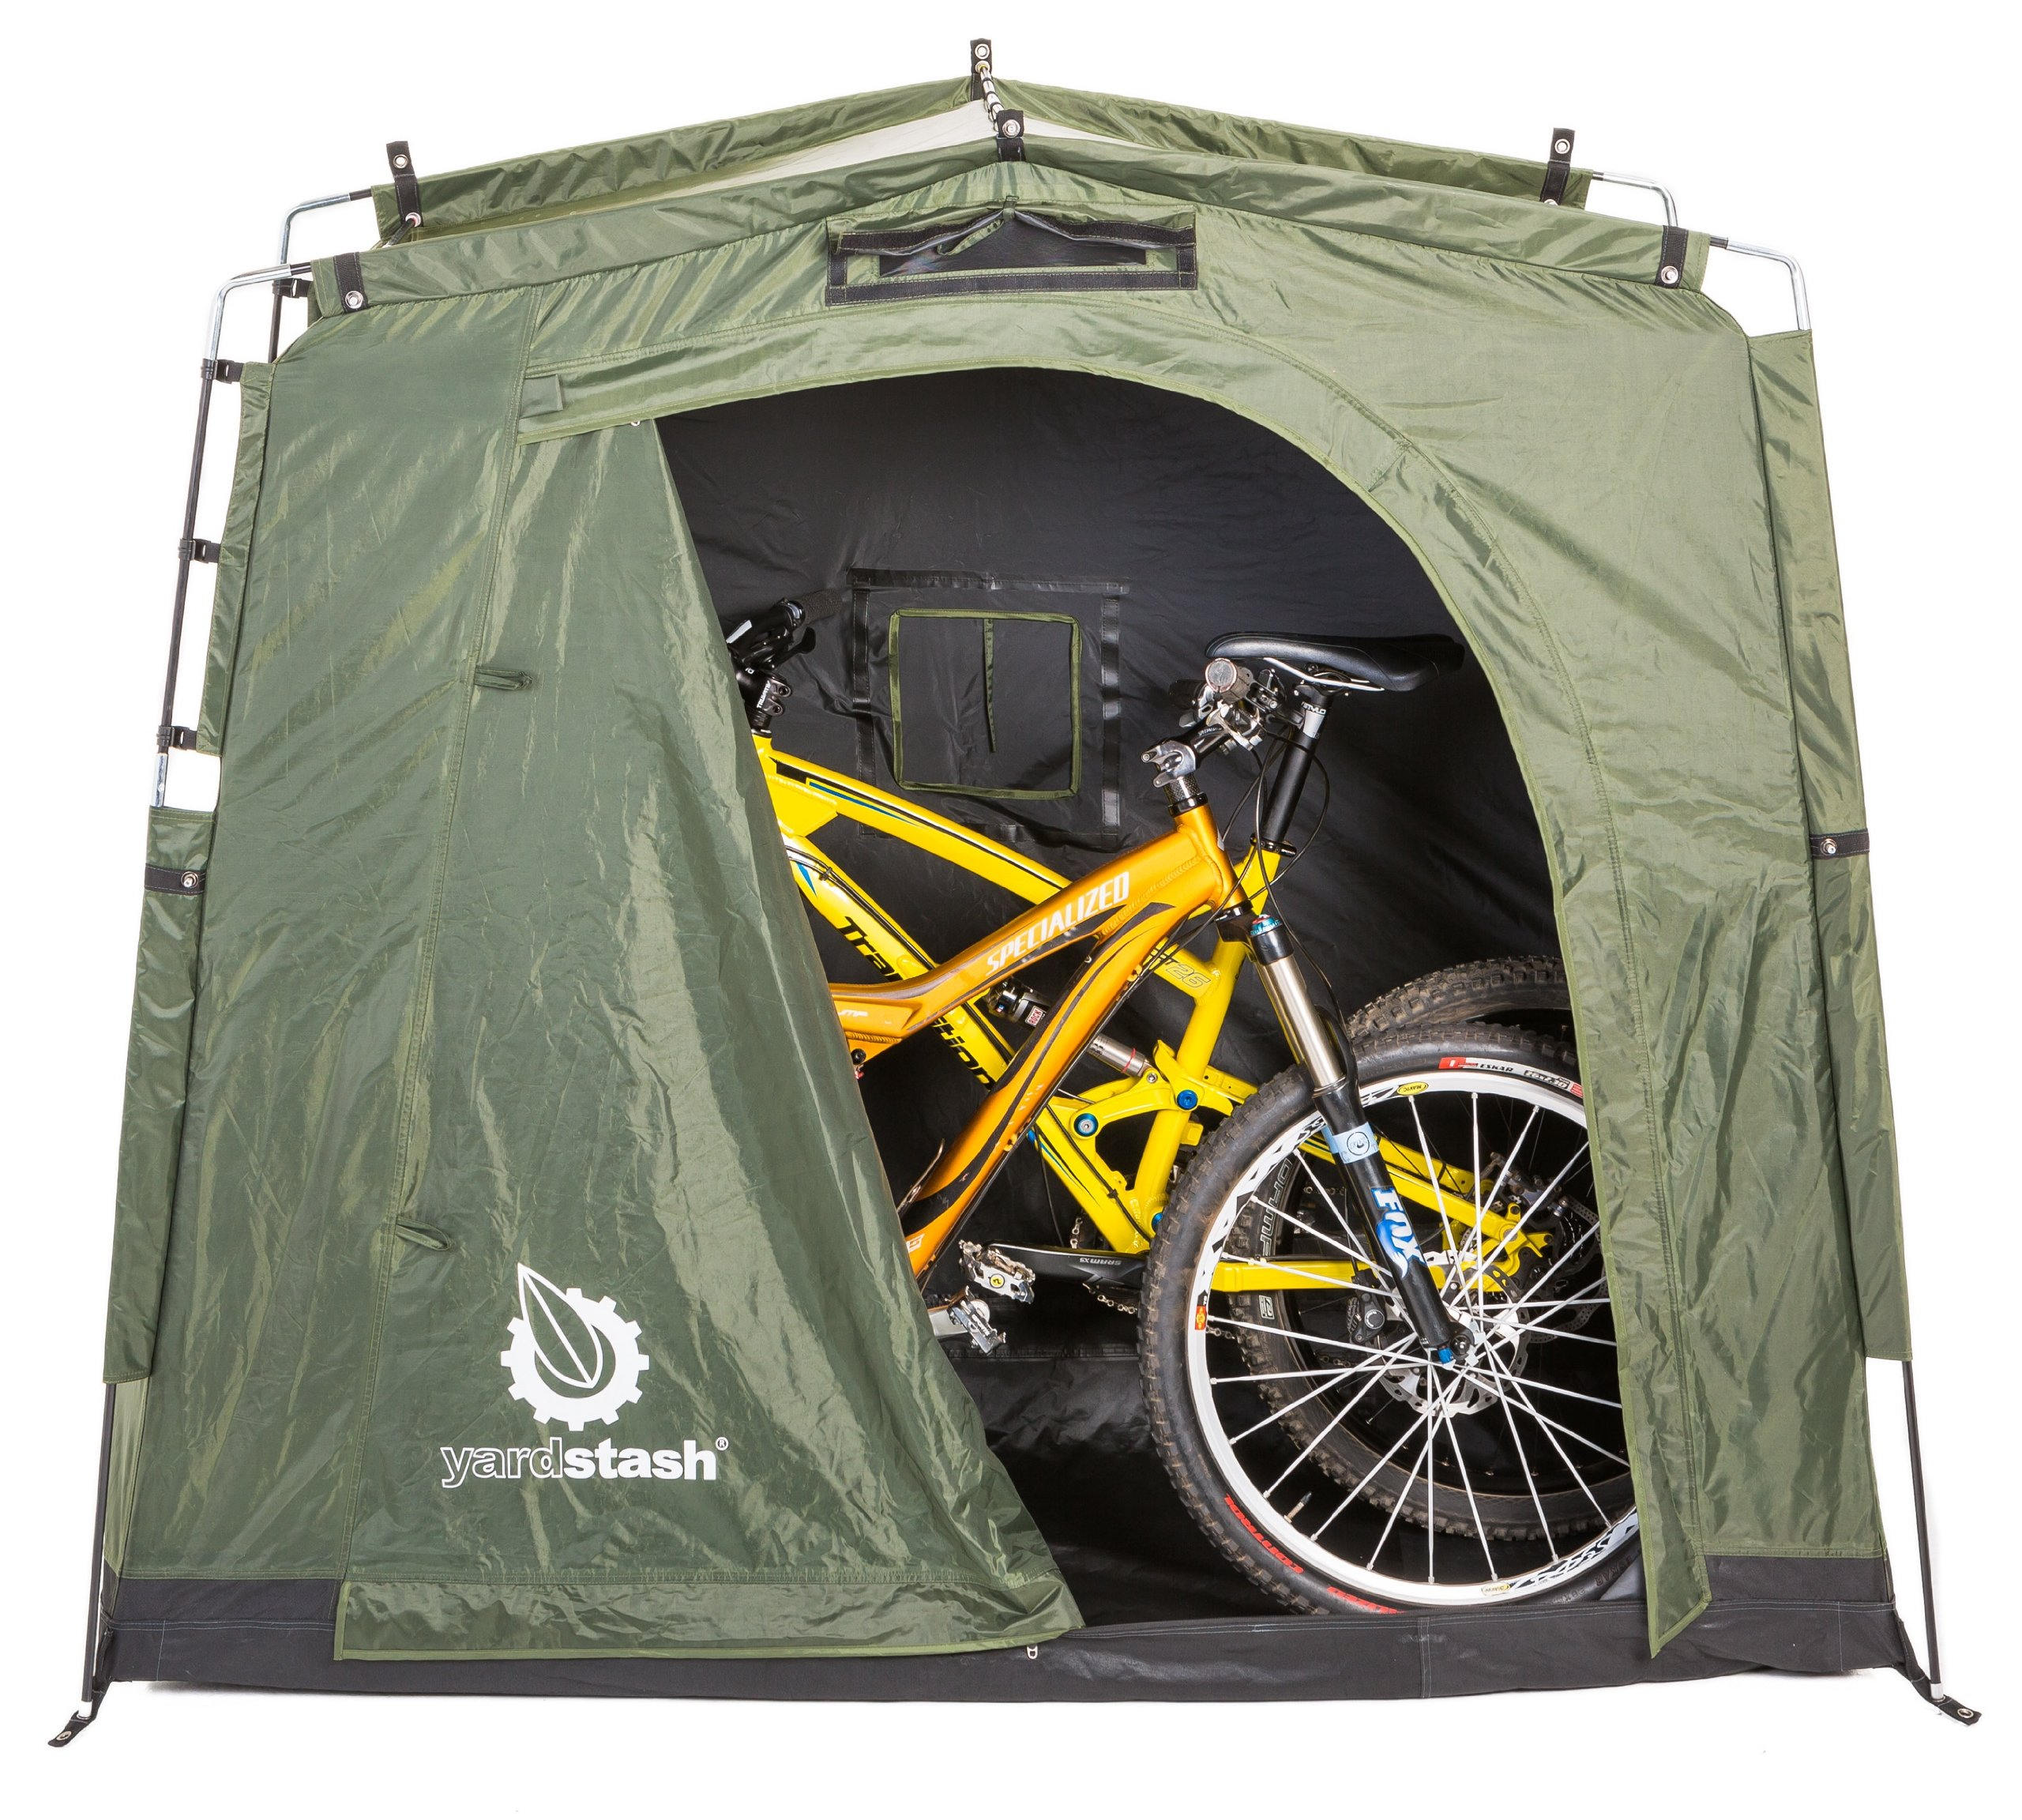 Want A Decent Dumping Ground For Your Bikes And Other Stuff One Of The More Economical Outdoor Bike Storage Solutions Is Yardstash Iii